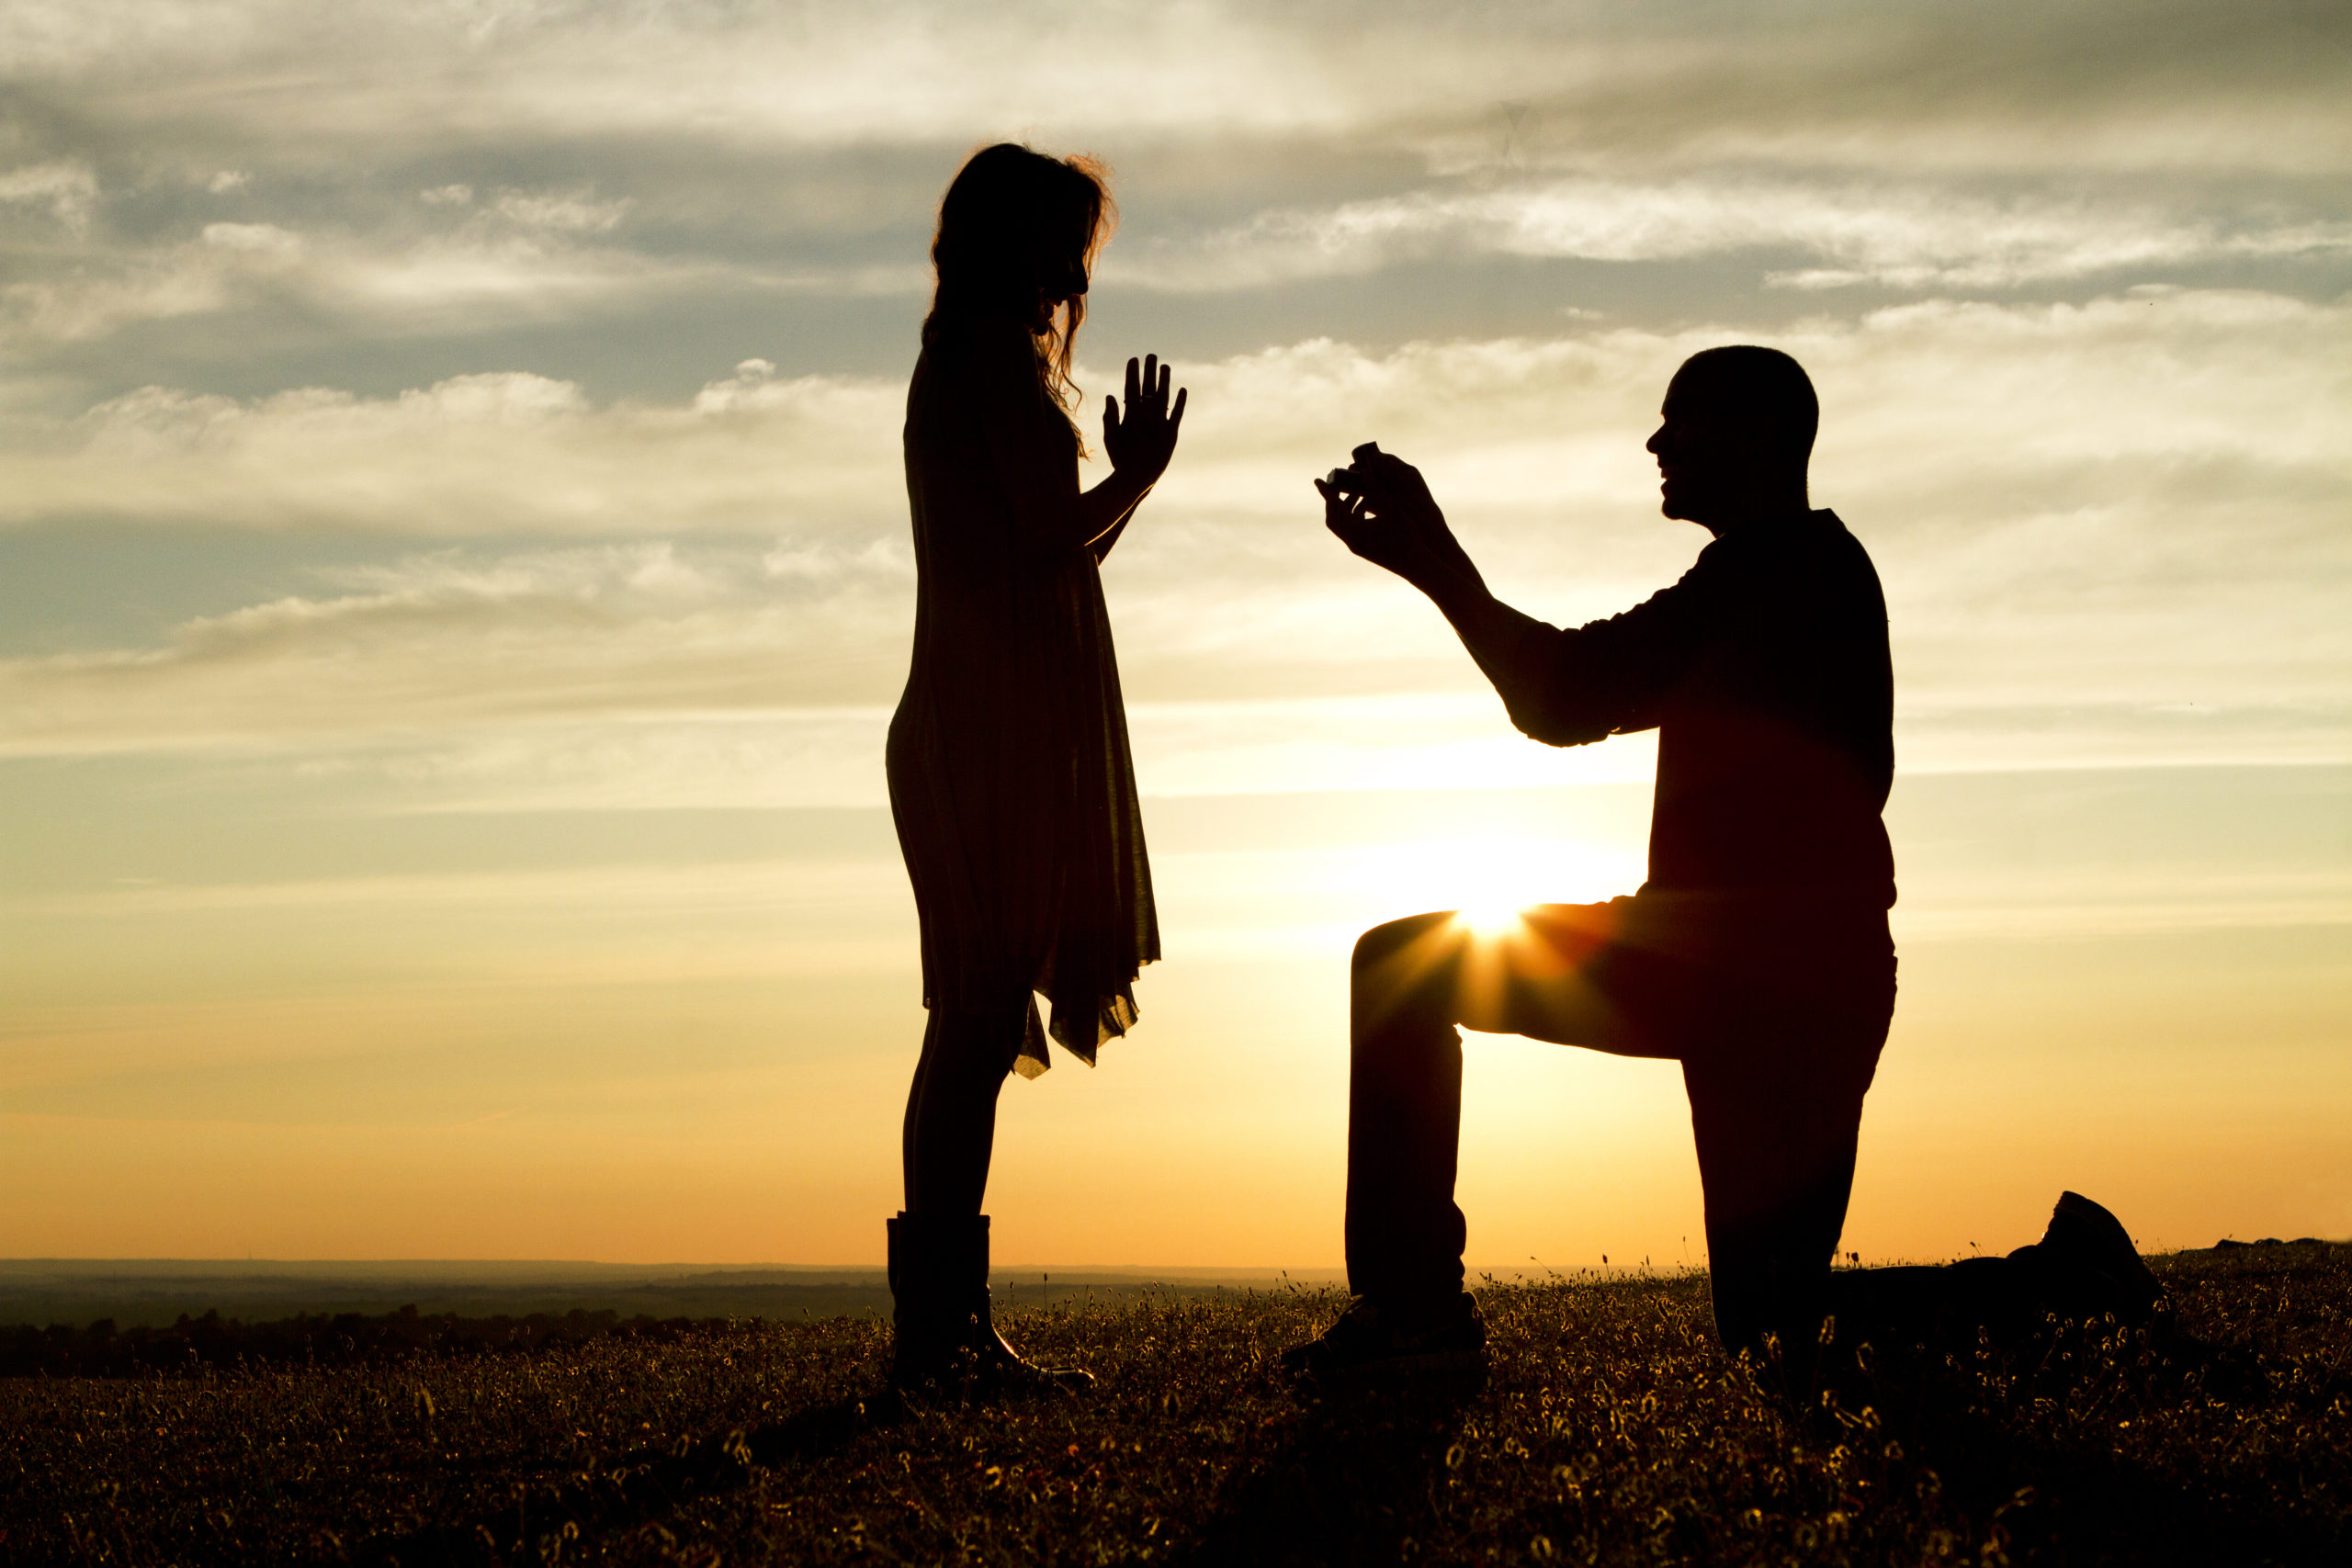 sunset-marriage-proposal-147572846